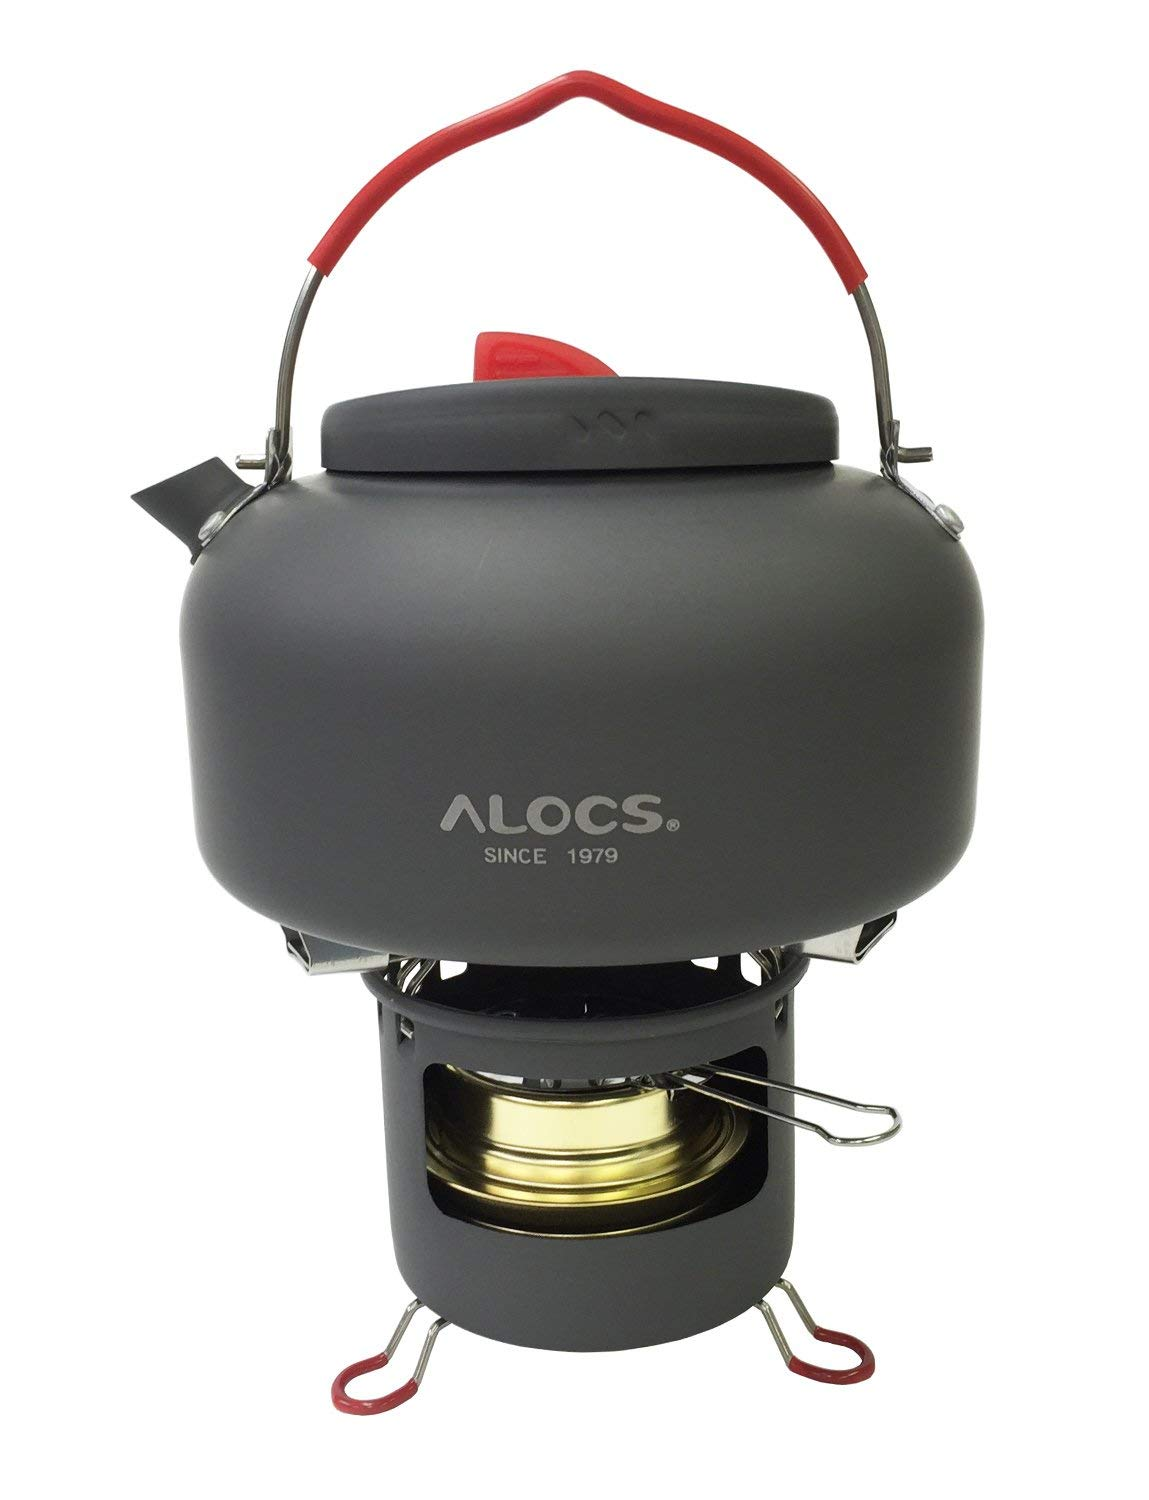 Alocs 3pcs Camping Kettle Set contains support,alcohol heaterand 1.4L/47.34fl oz kettle